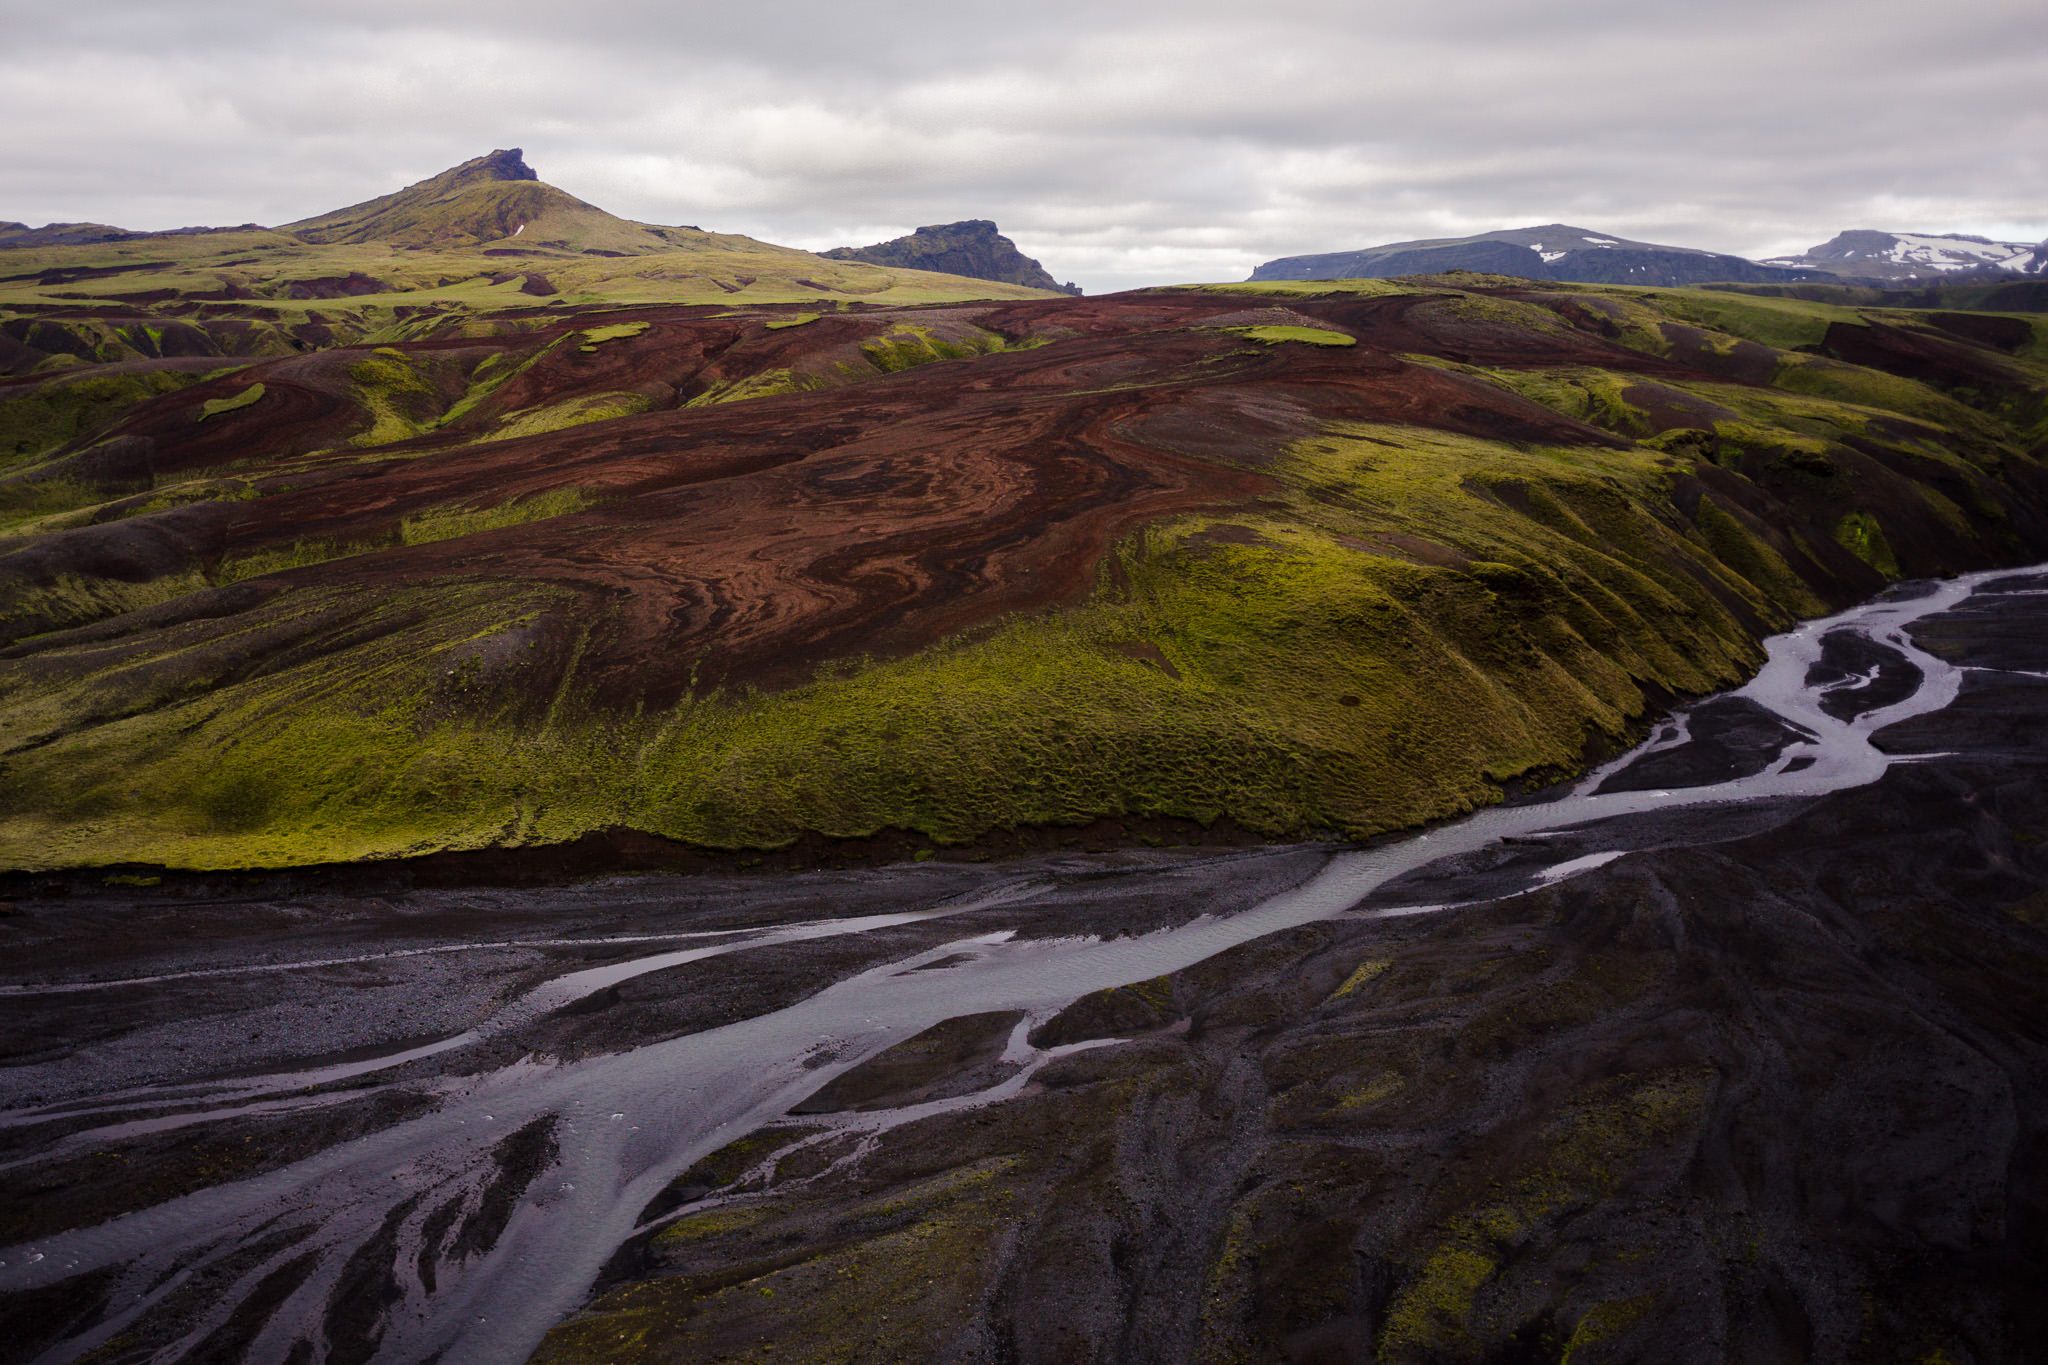 Drone Photography In Iceland